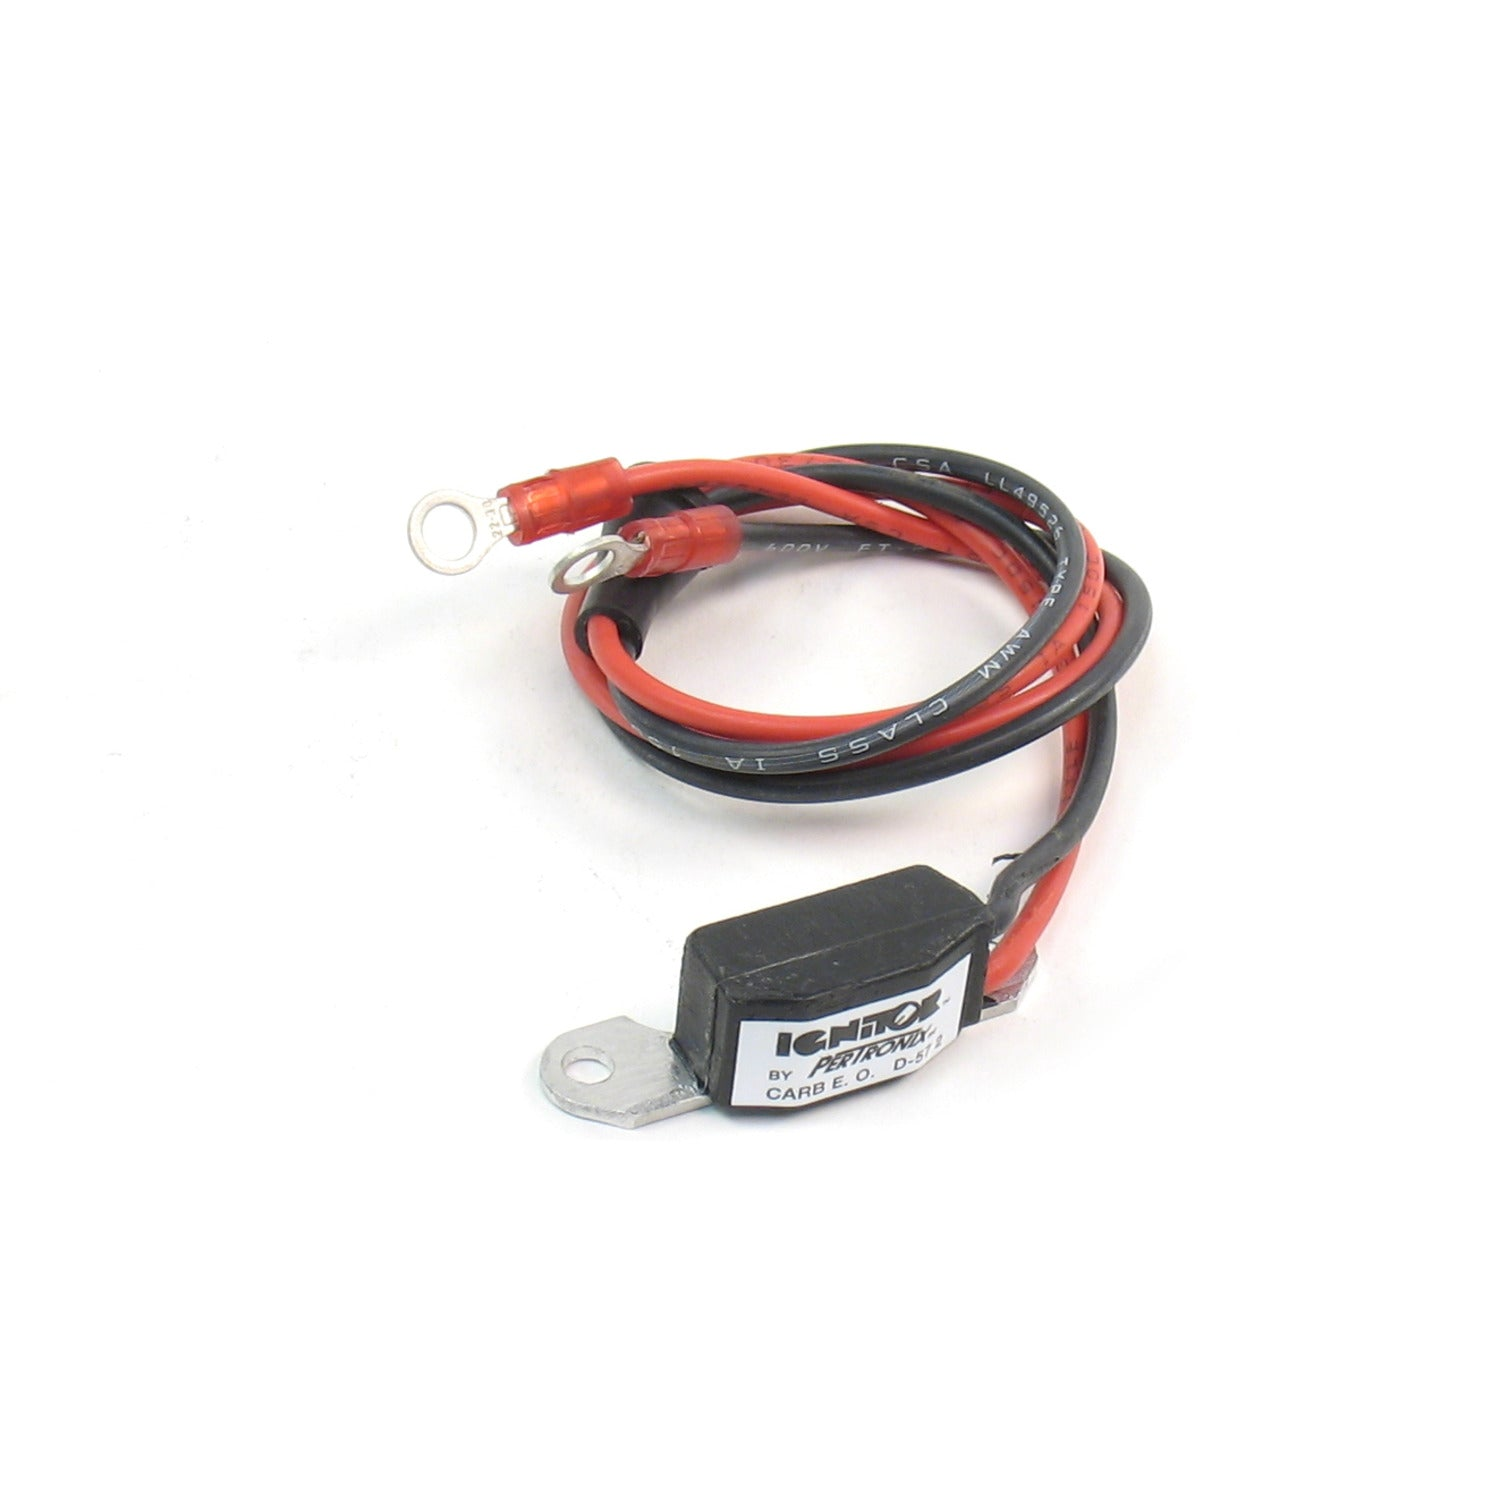 PerTronix D500715 Module (replacement) Ignitor for PerTronix Flame-Thrower Chevy Cast Distributor